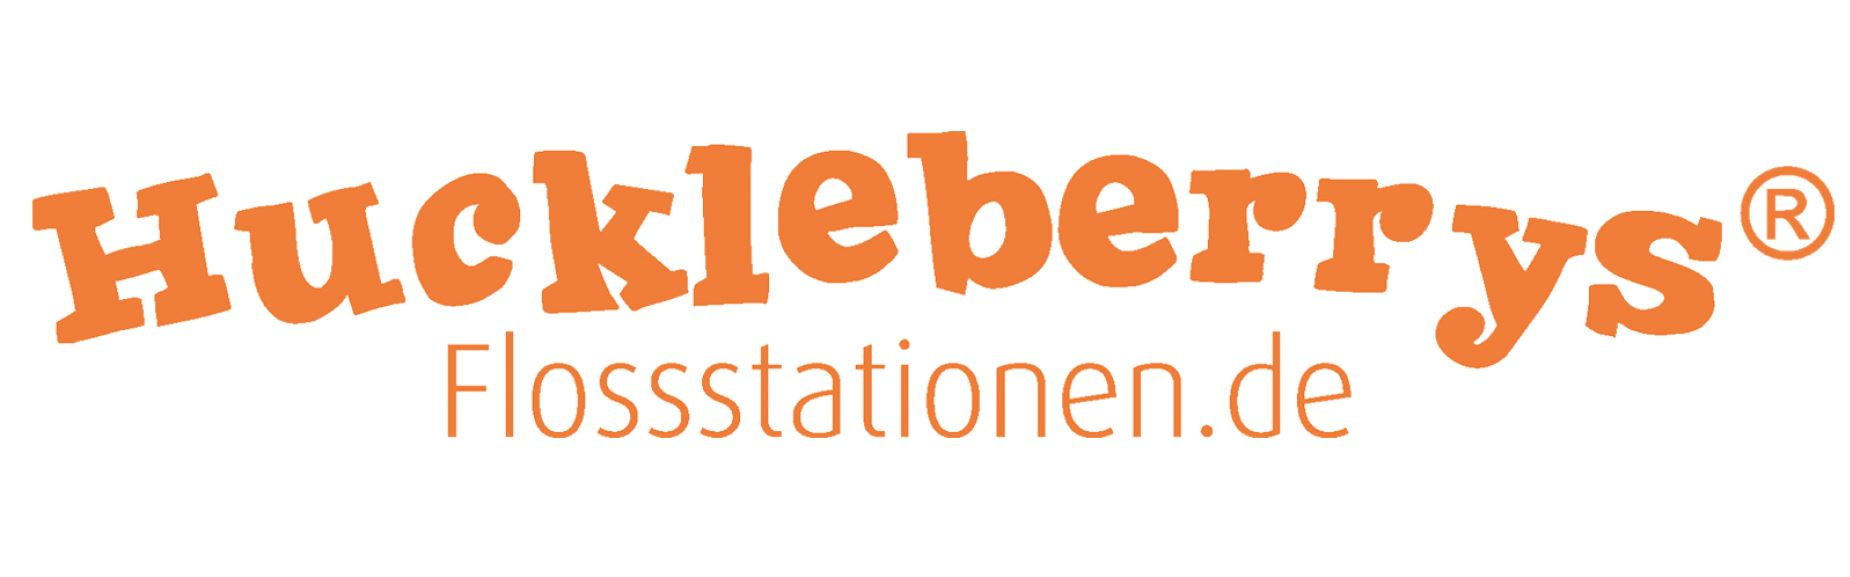 Huckleberry tours logo